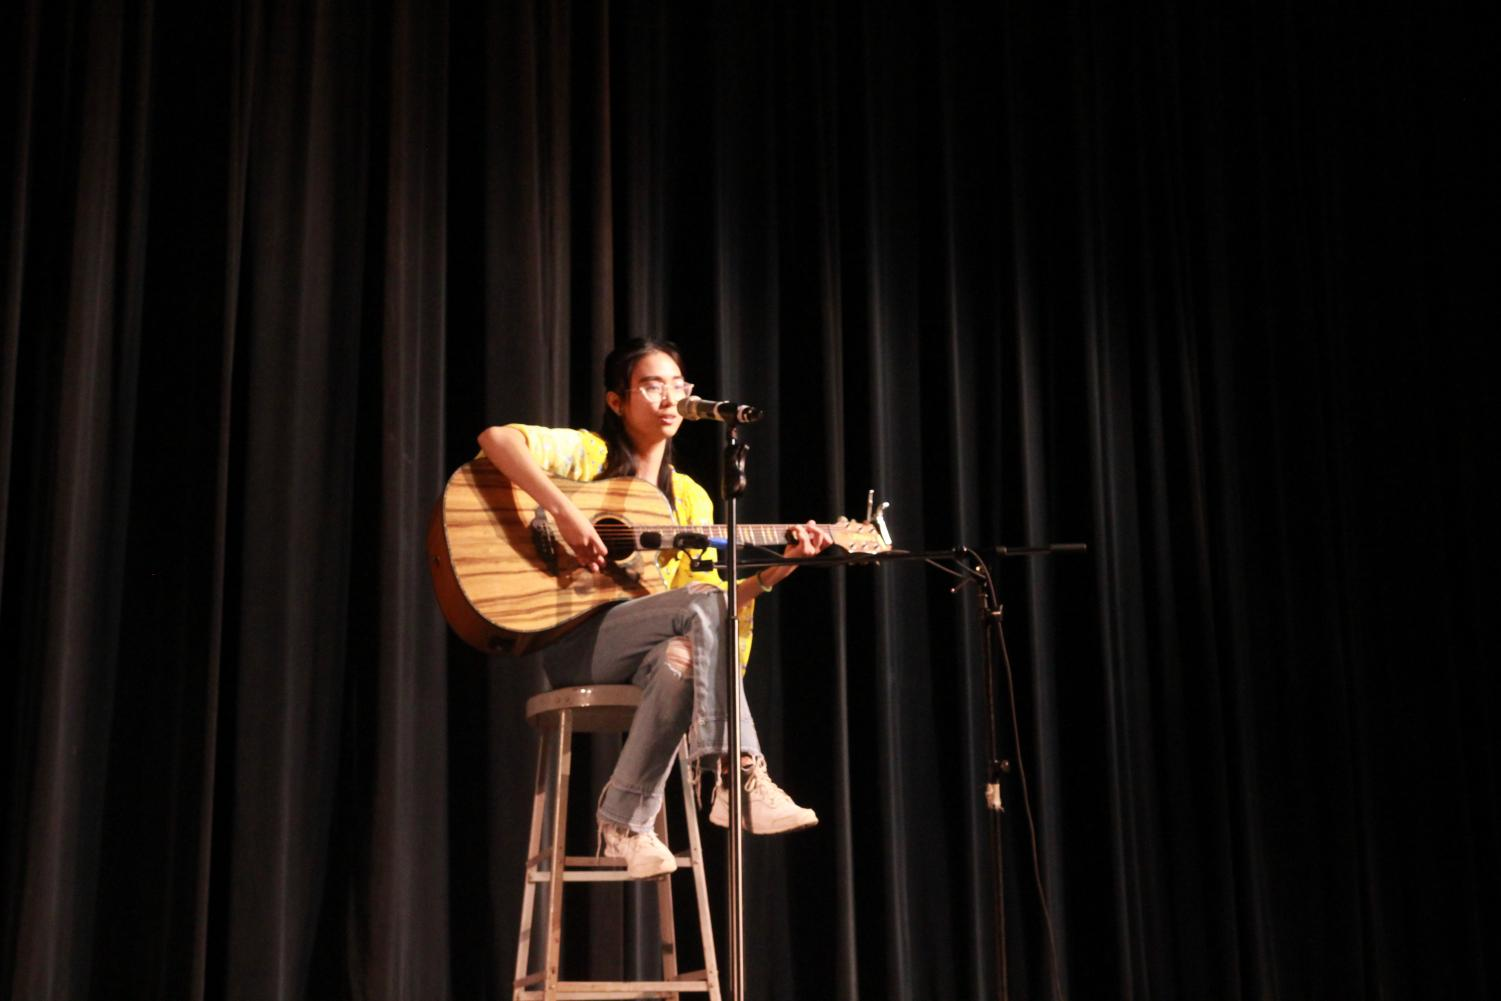 Strumming+her+guitar%2C+junior+Reian+Beltran+sings+in+the+auditorium+April+23.+Beltran+sang+Brave+by+Sara+Bareilles%2C+and+said+she+chose+to+sing+the+song+%E2%80%9Cbecause+it+was+about+speaking+about+how+you+feel+and+not+caring+what+other+people+think+and+encouraging+others.%E2%80%9D